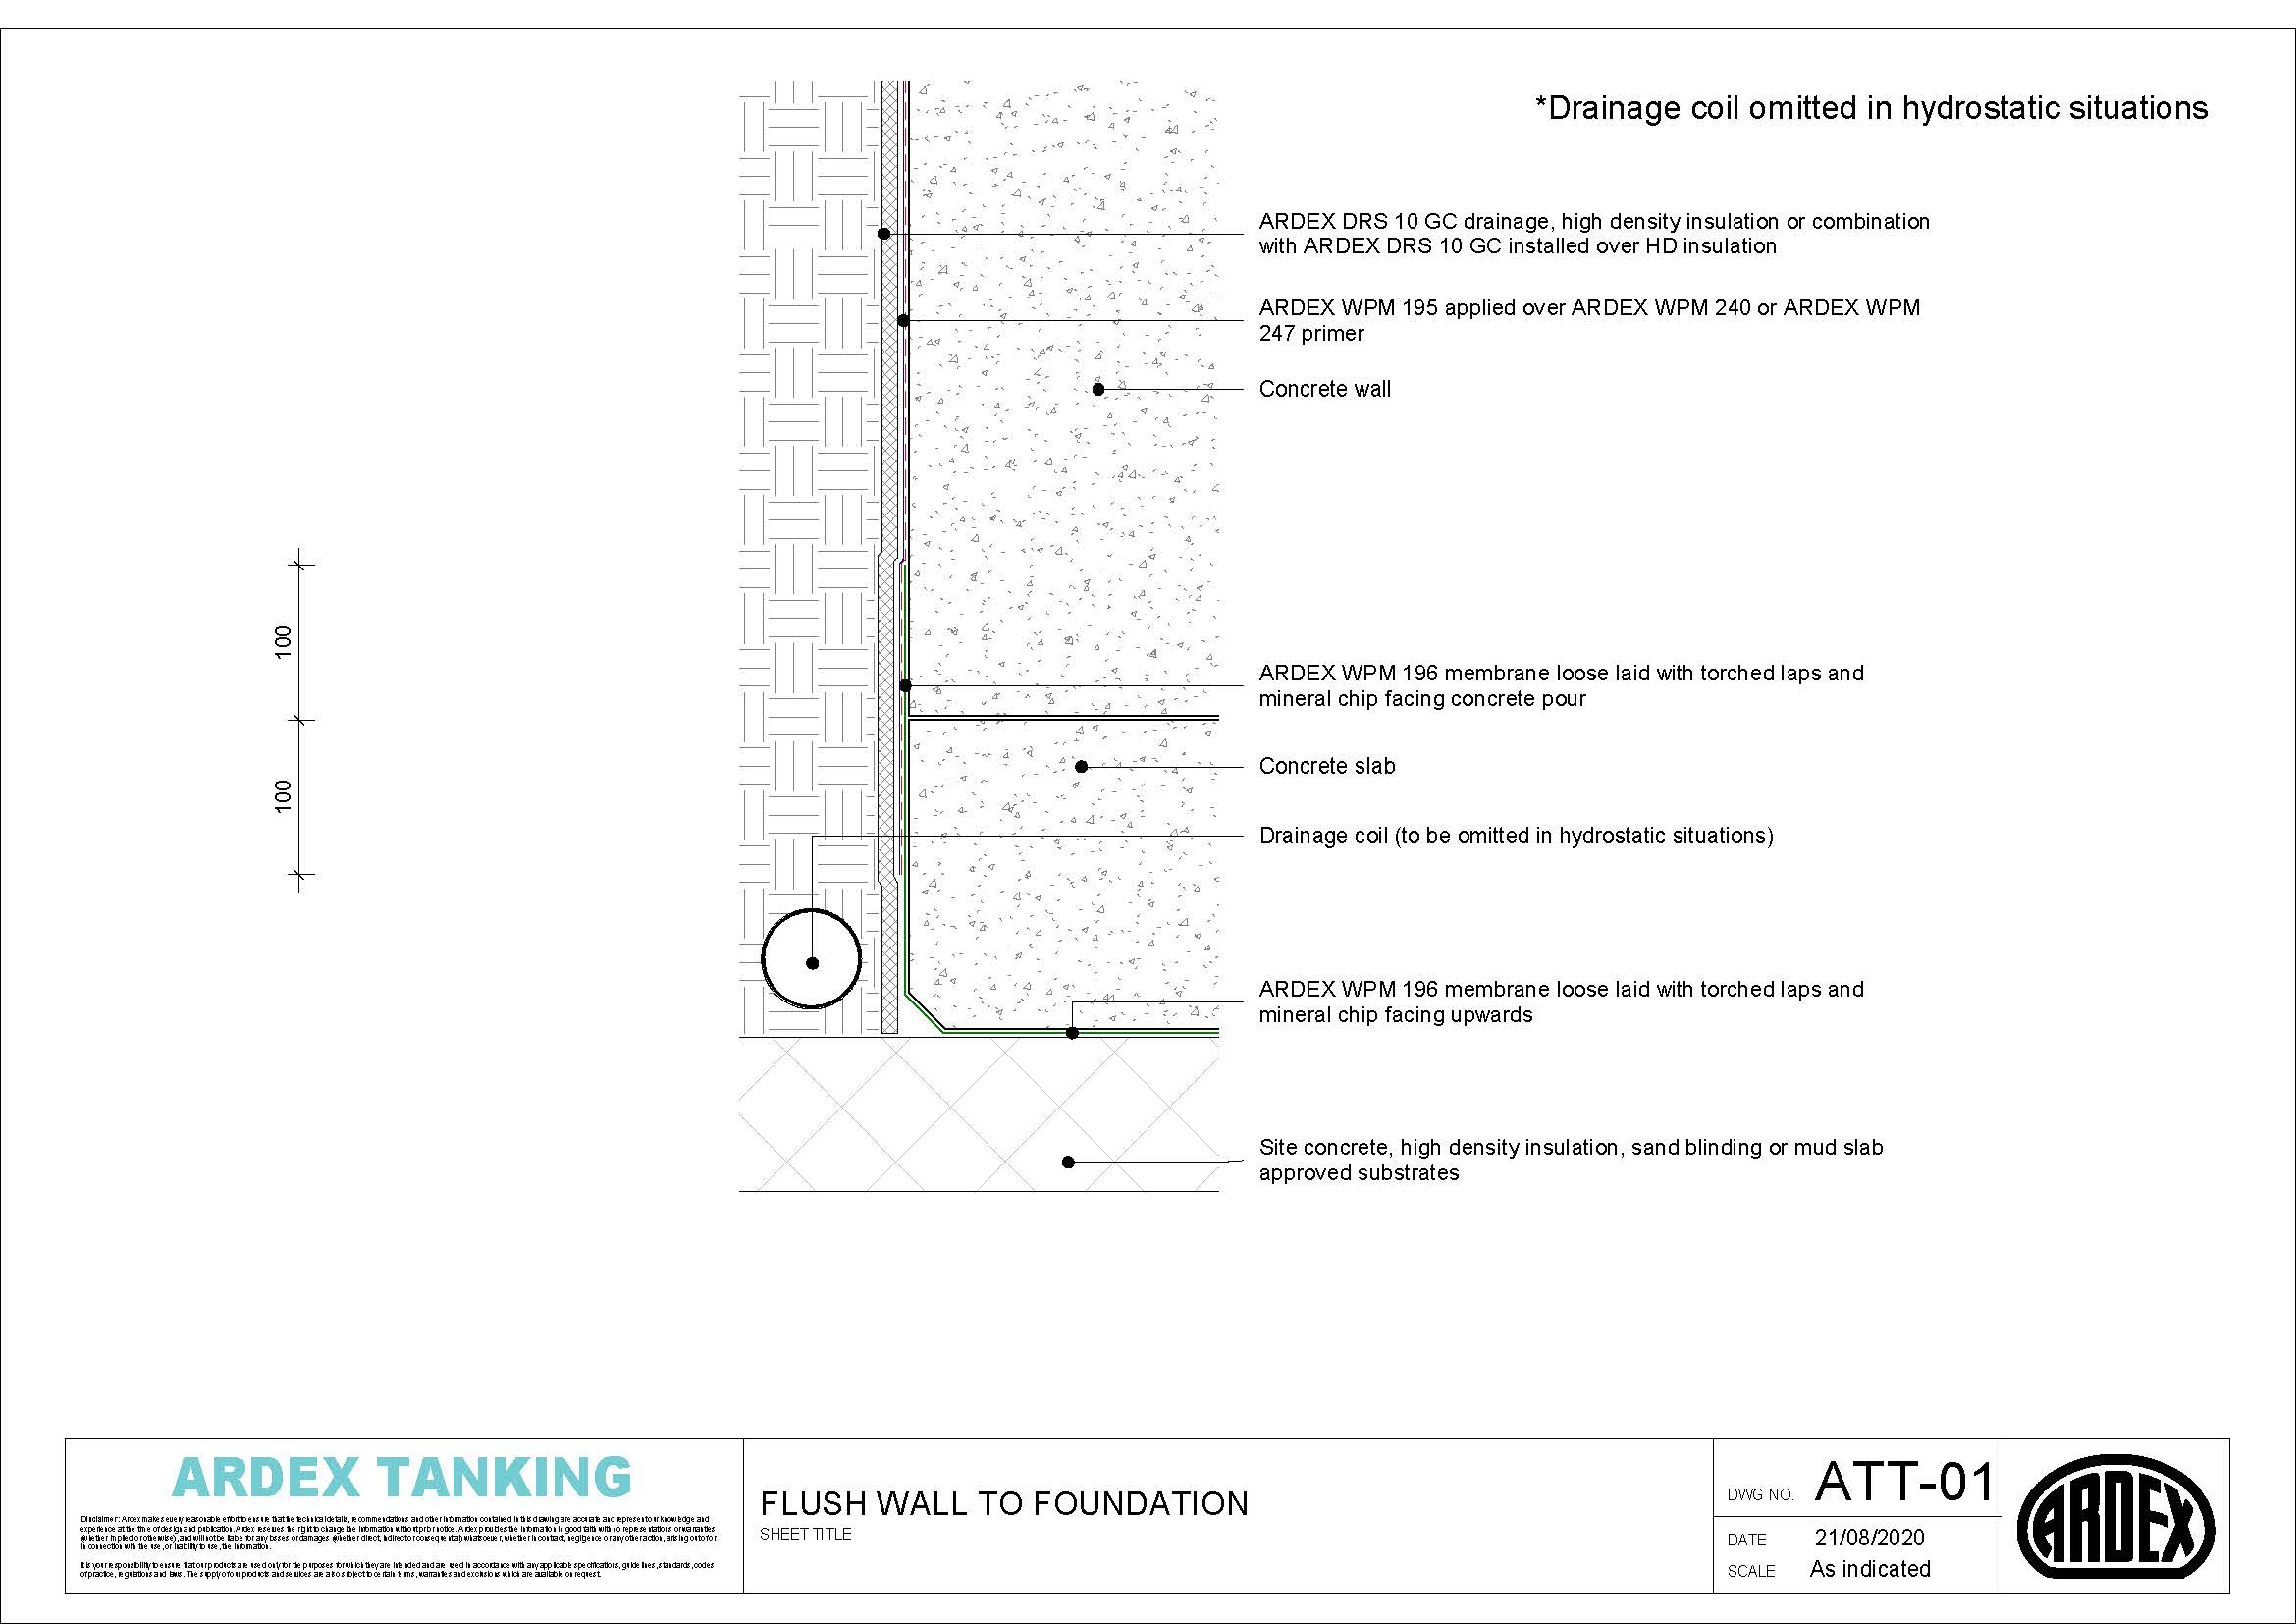 Torch-applied bituminous membrane tanking application detail drawing for flush walls and foundation